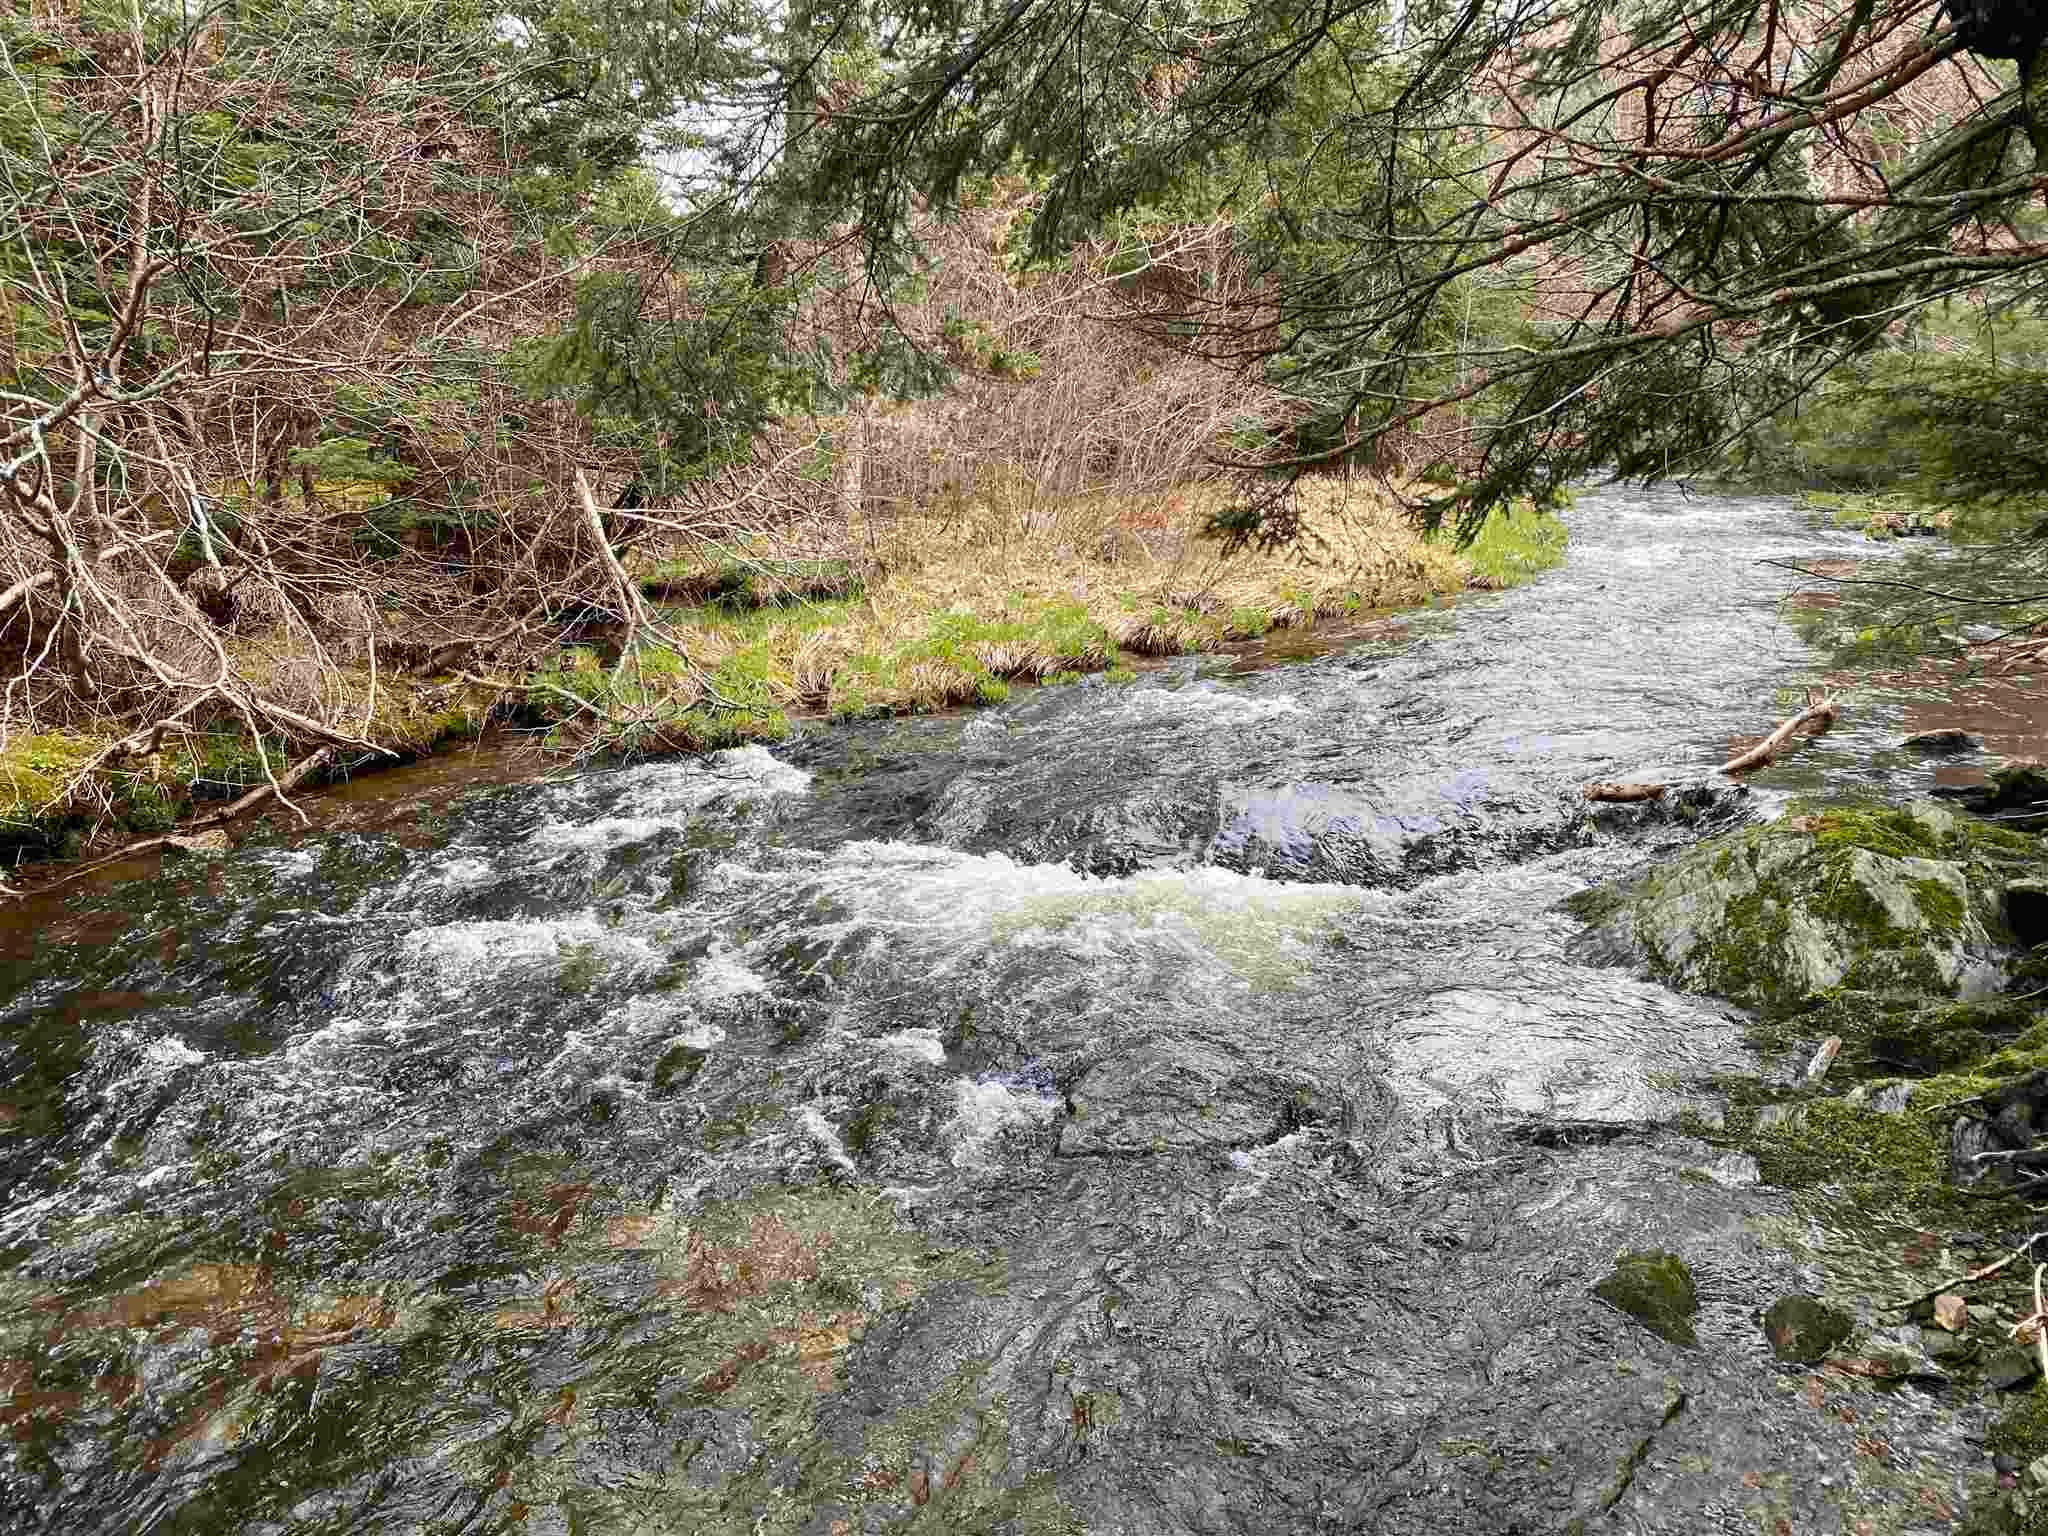 Main Photo: Sherbrooke Road in Greenvale: 108-Rural Pictou County Vacant Land for sale (Northern Region)  : MLS®# 202112435